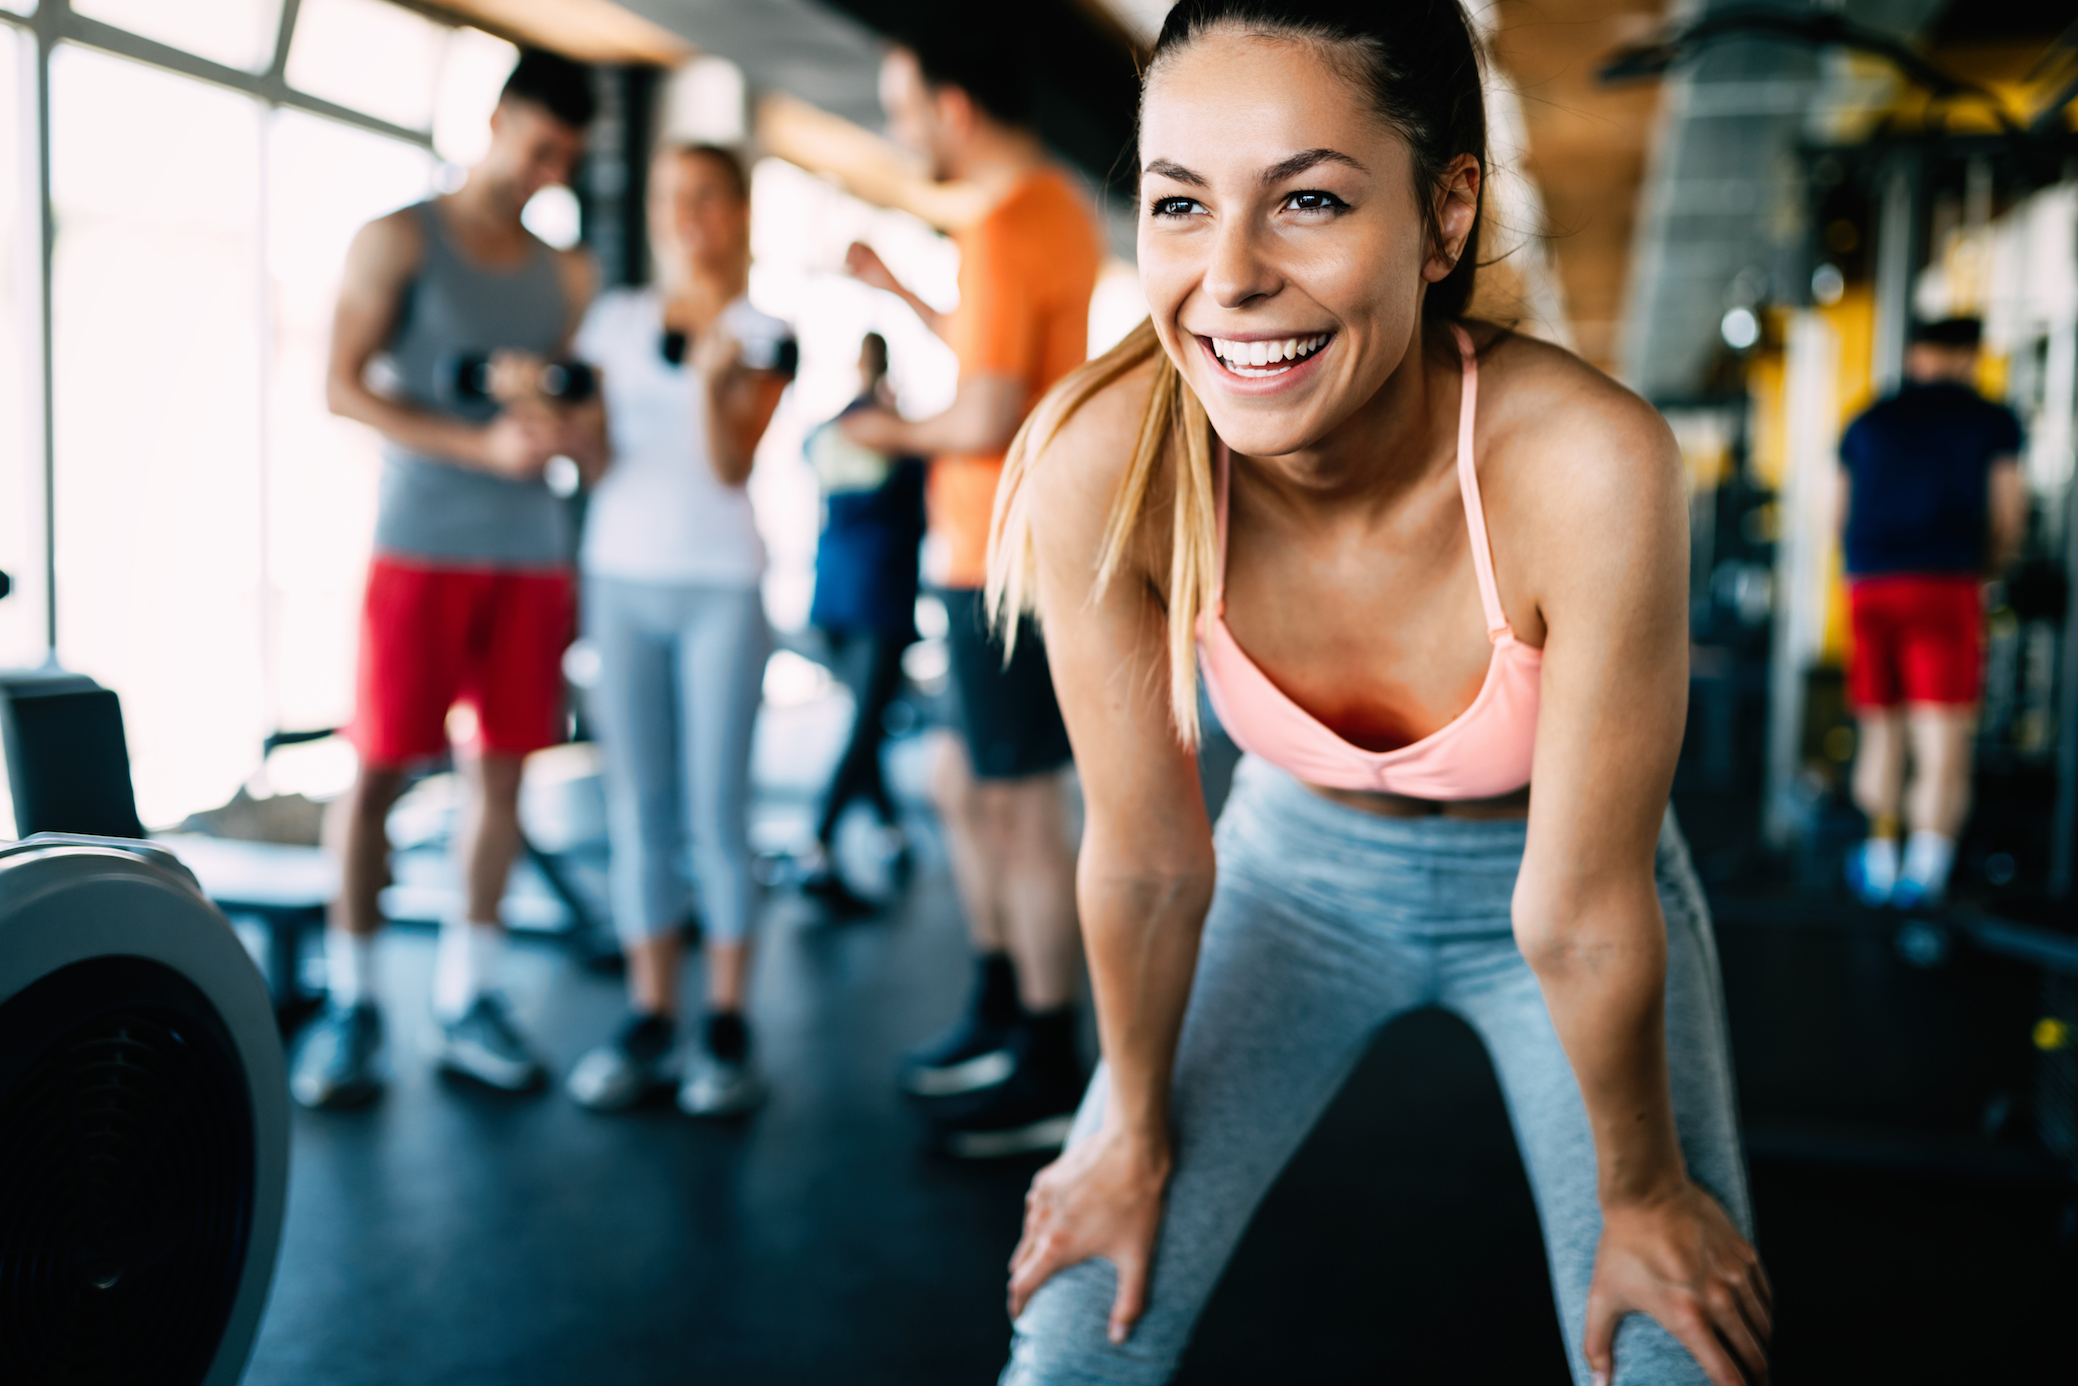 Exercise is just as important to the health of individuals who are suffering from depression as finding an effective medication.